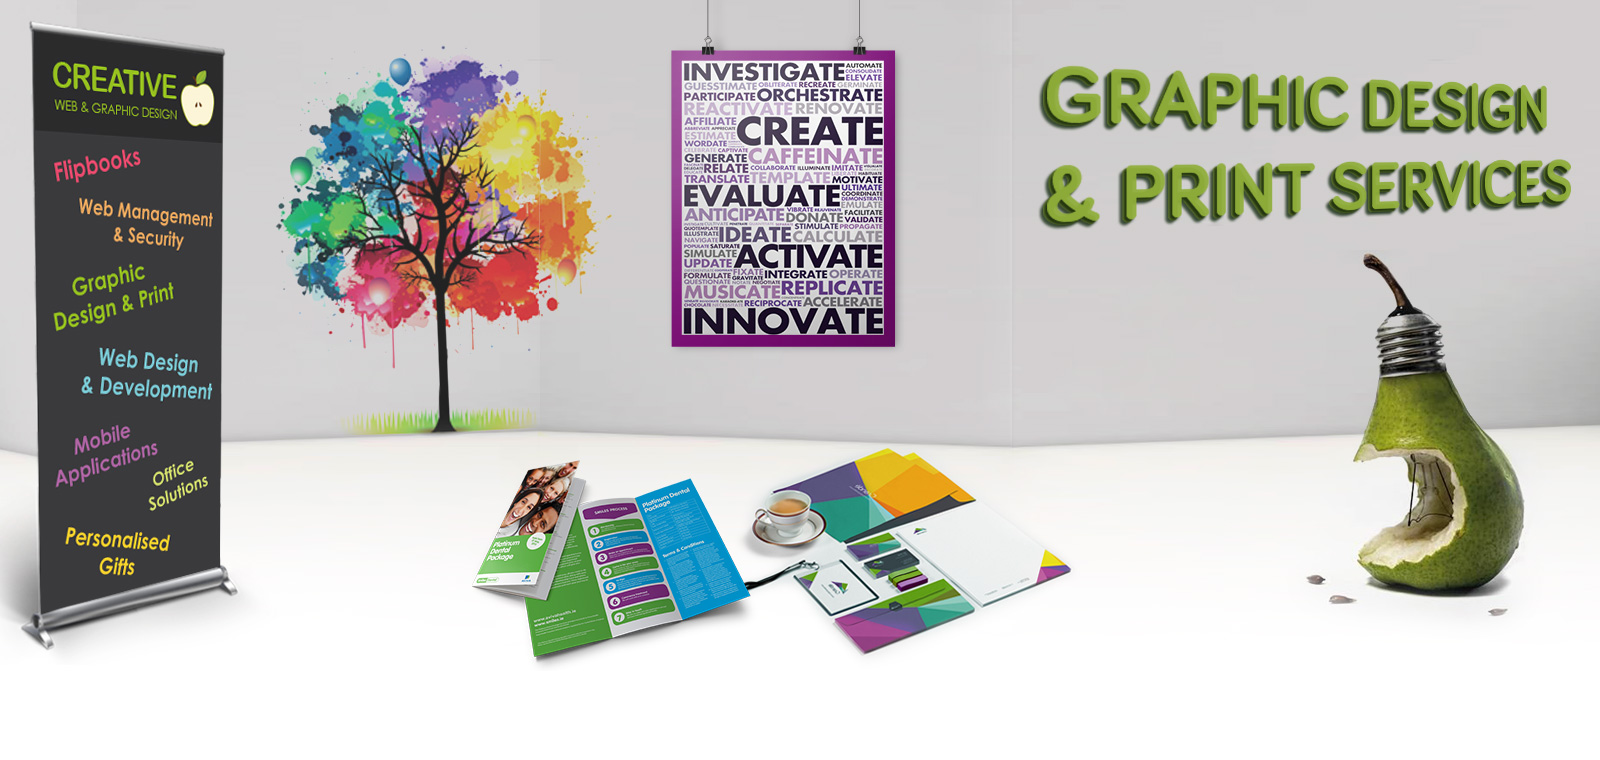 Graphic Design & Print Services - Stockport Design Agency